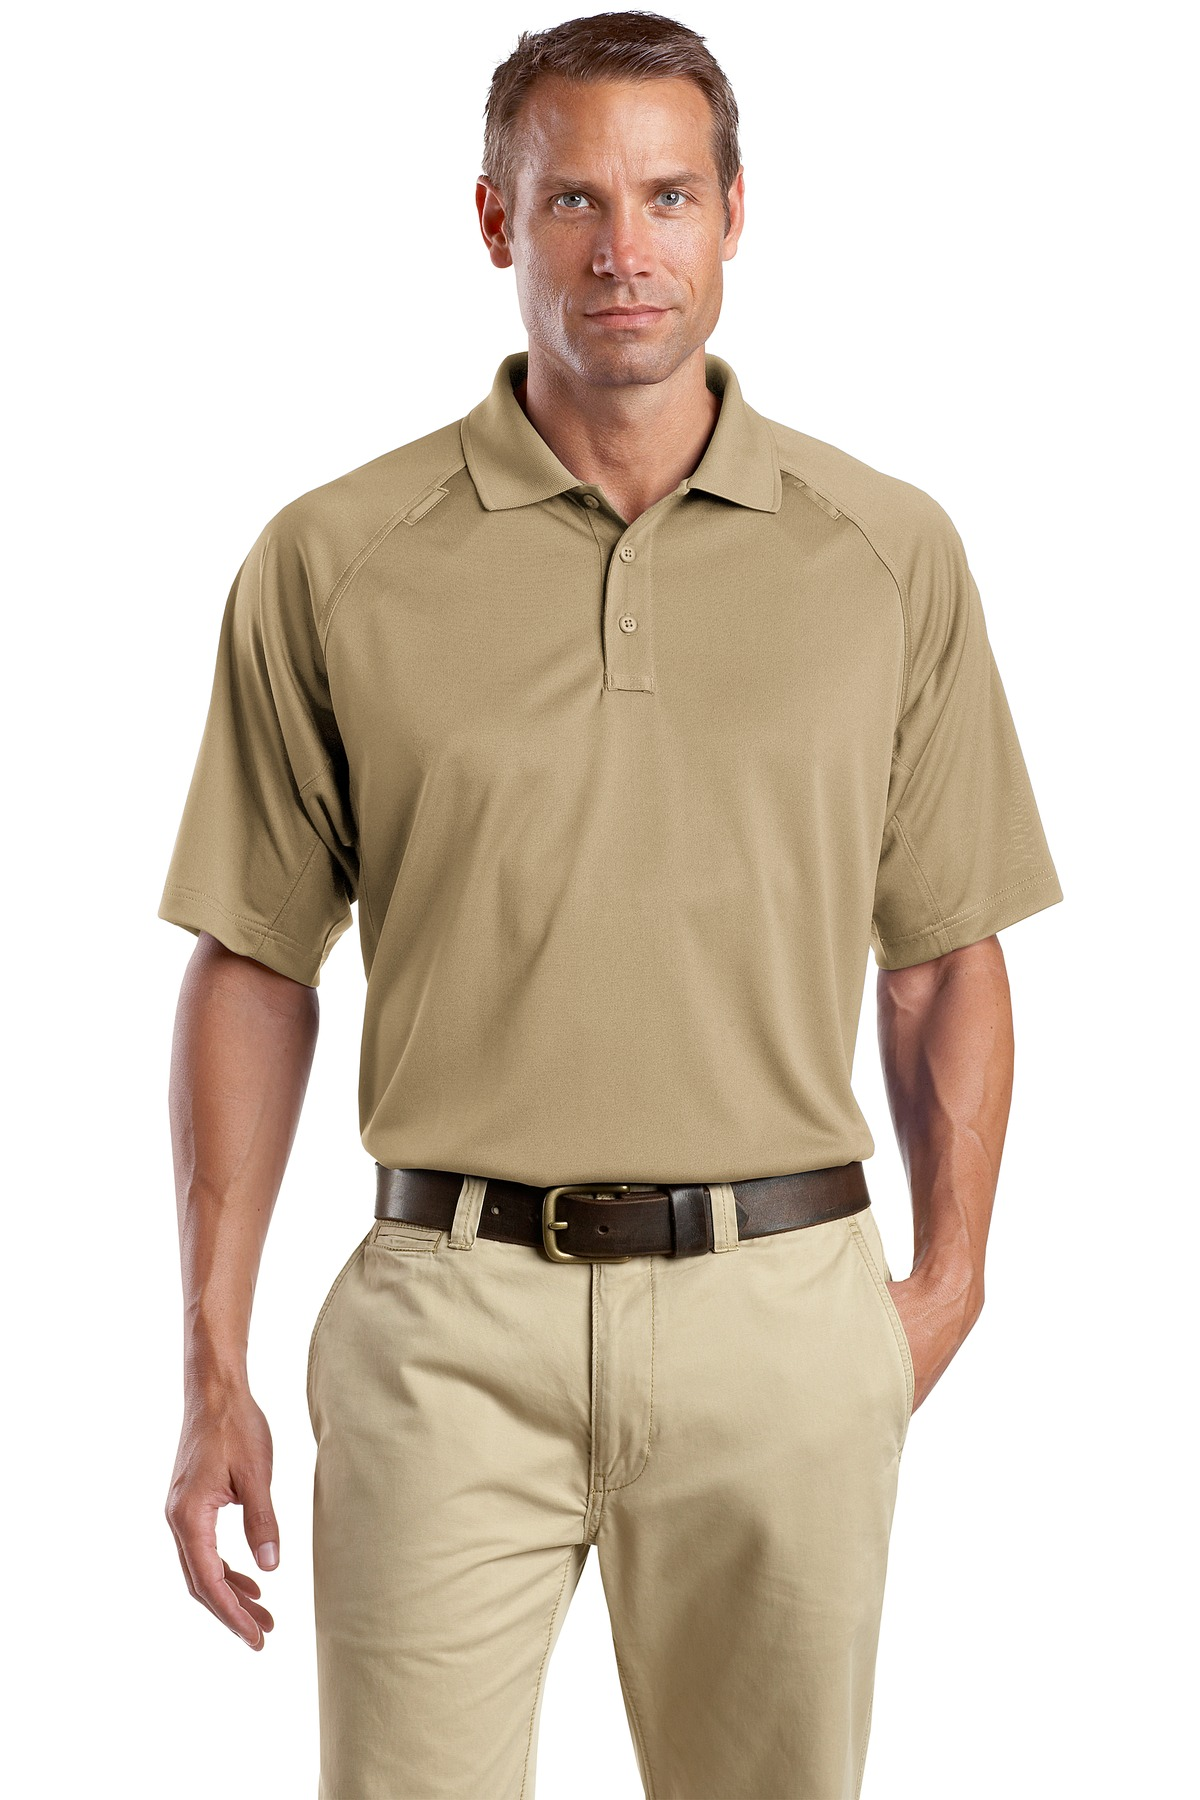 CornerStone ®  - Select Snag-Proof Tactical Polo. CS410 - Tan